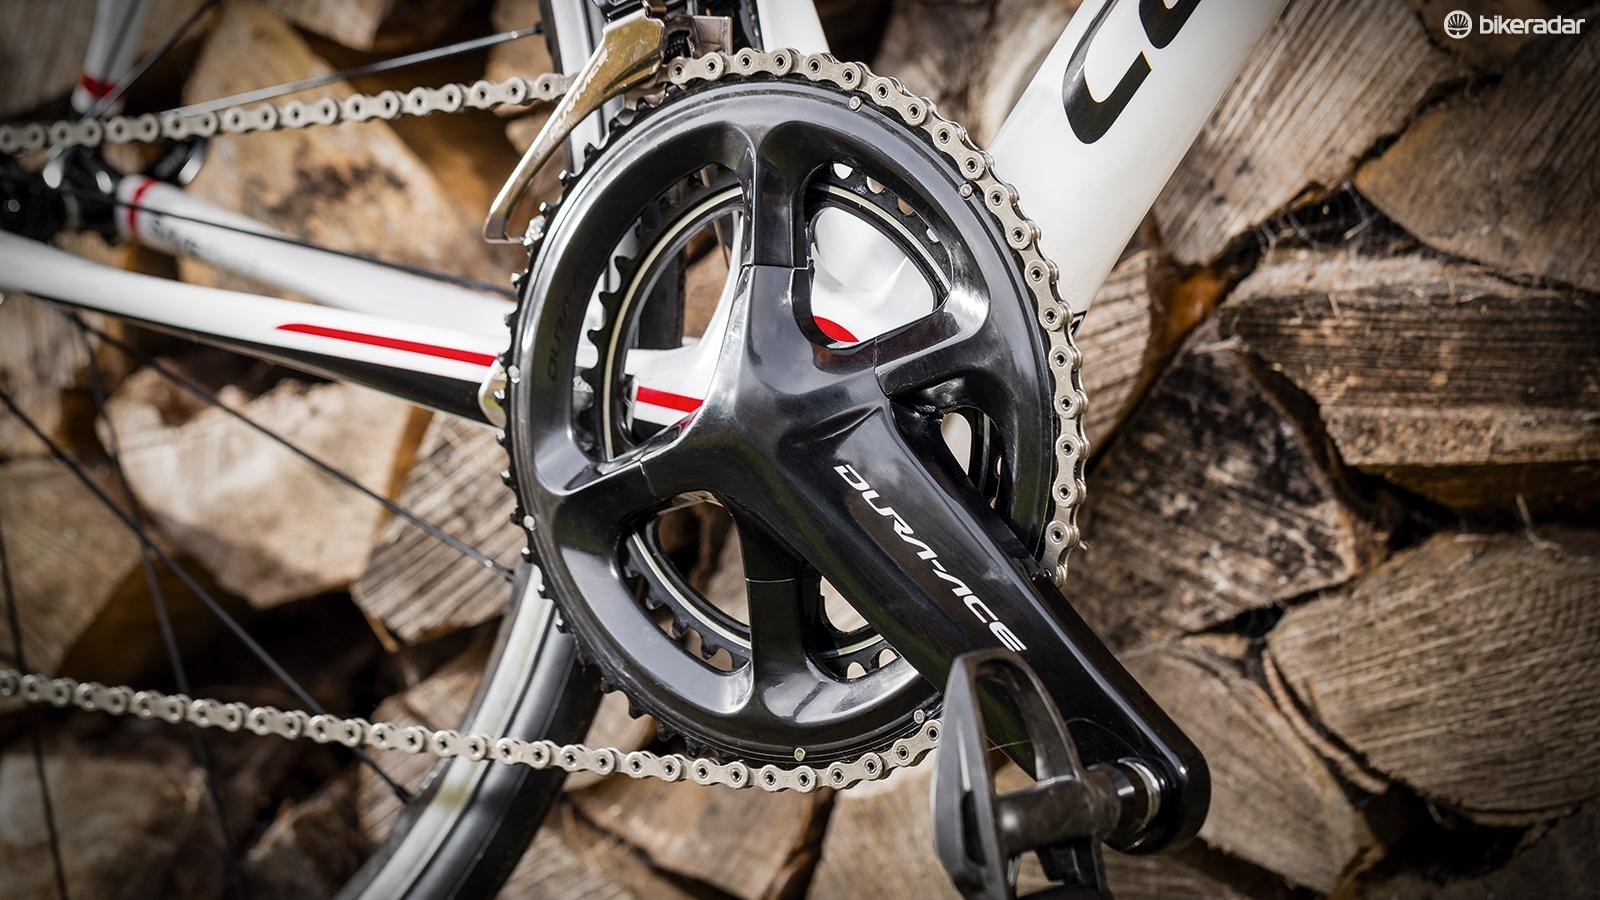 Shimano's Dura-Ace R9100 groupset